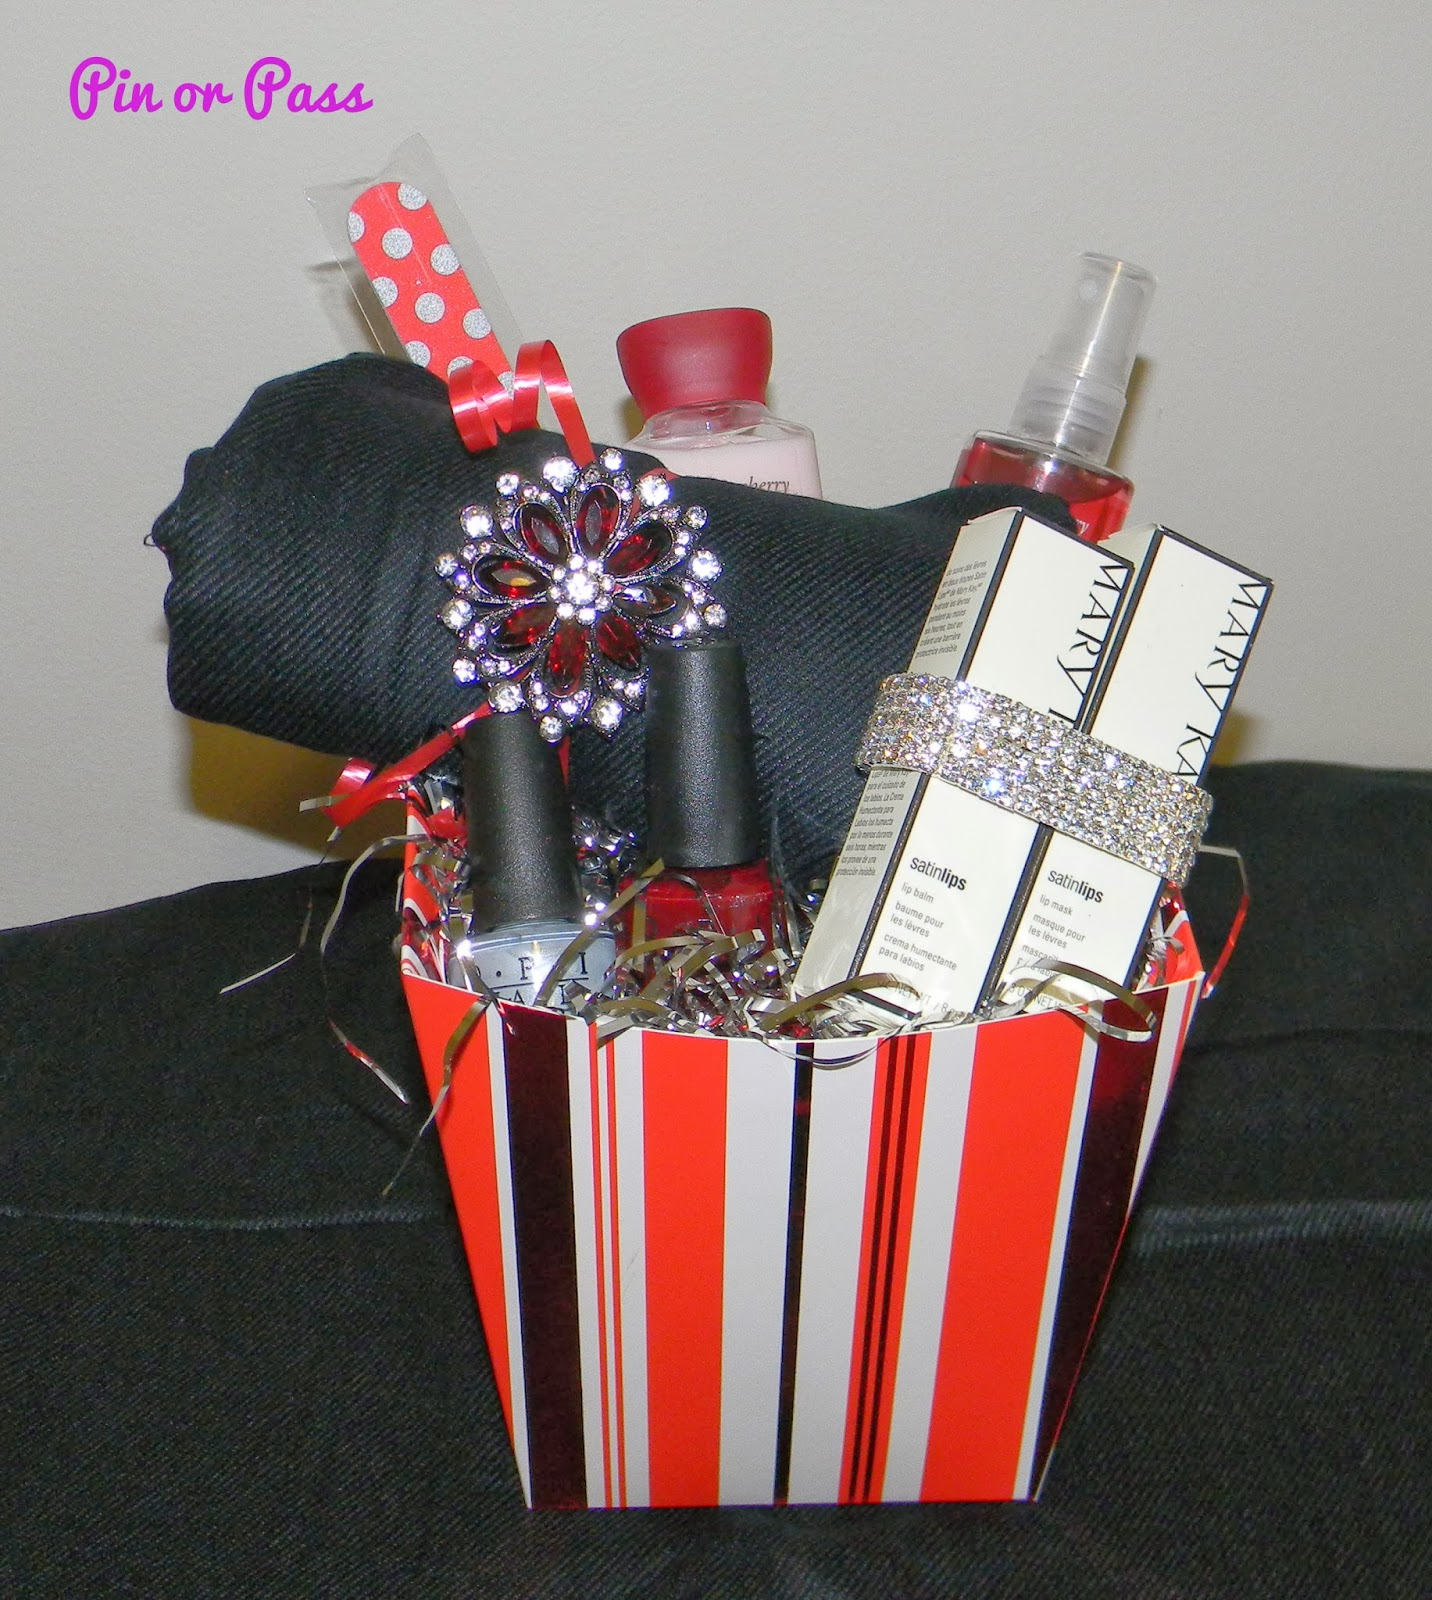 Pin or Pass: A Holiday Gift Basket Idea Inspired by Pinterest